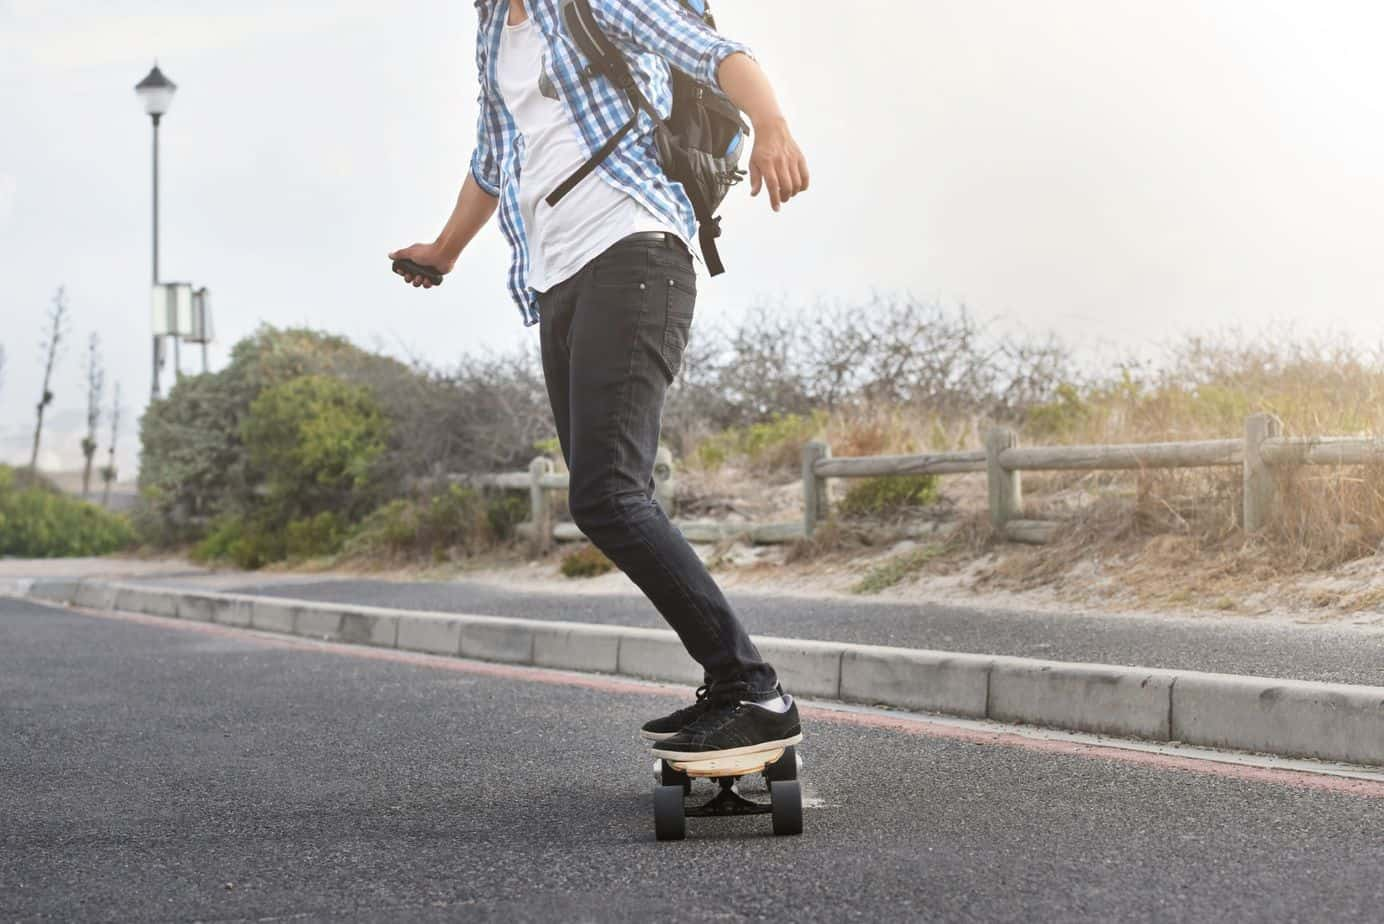 The Best Electric Skateboards For College